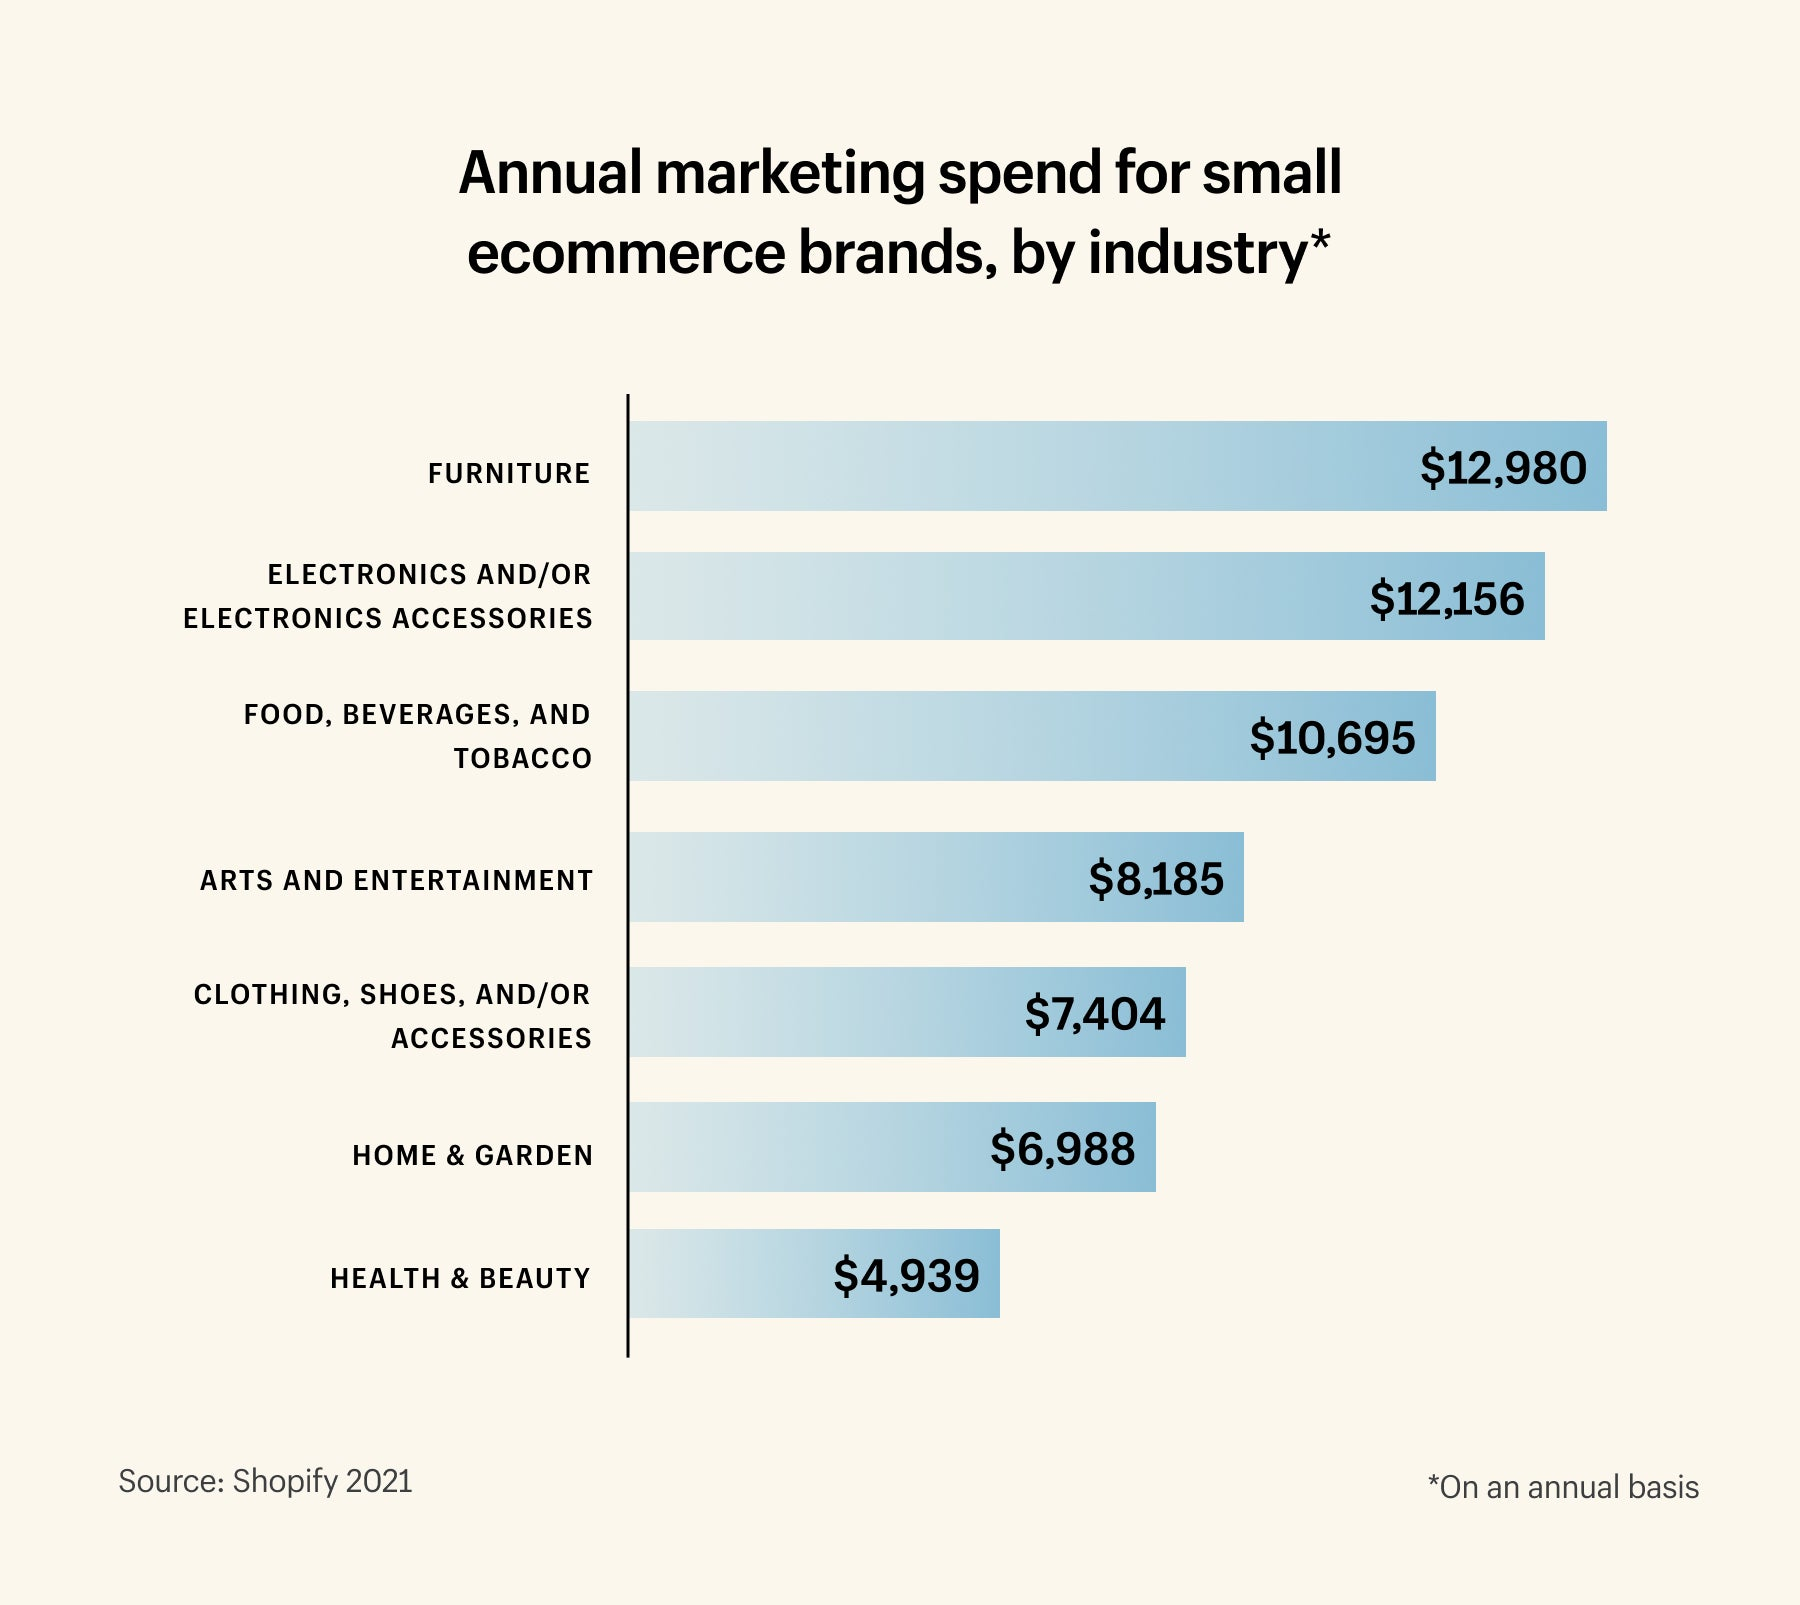 Annual marketing spend by industry